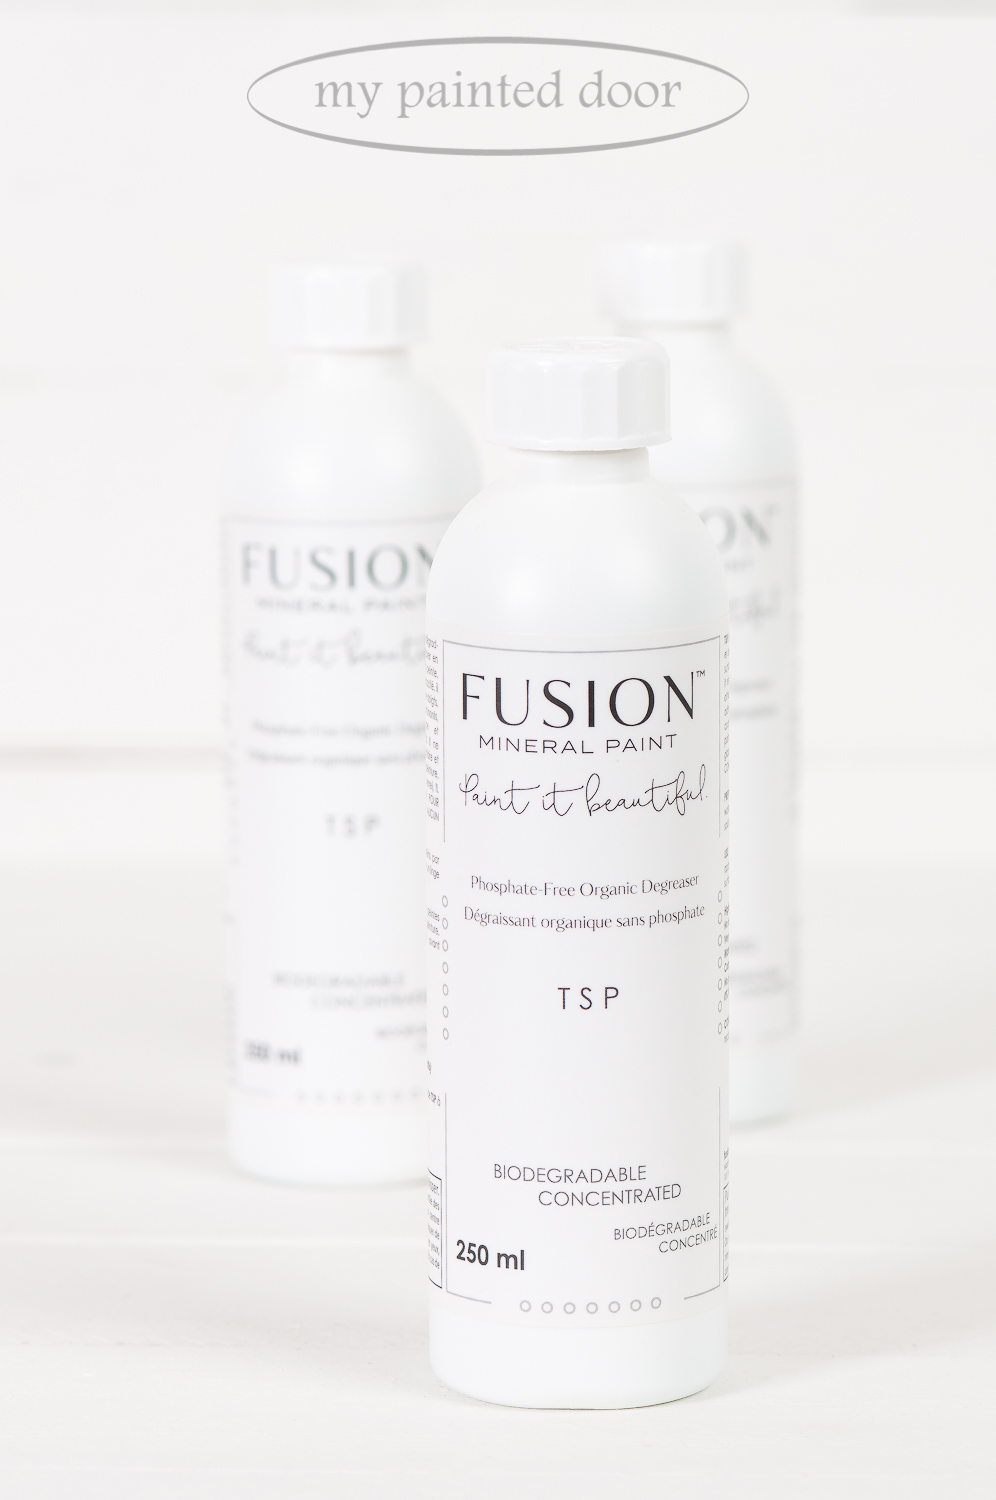 Fusion Mineral Paint TSP is eco-friendly and biodegradable